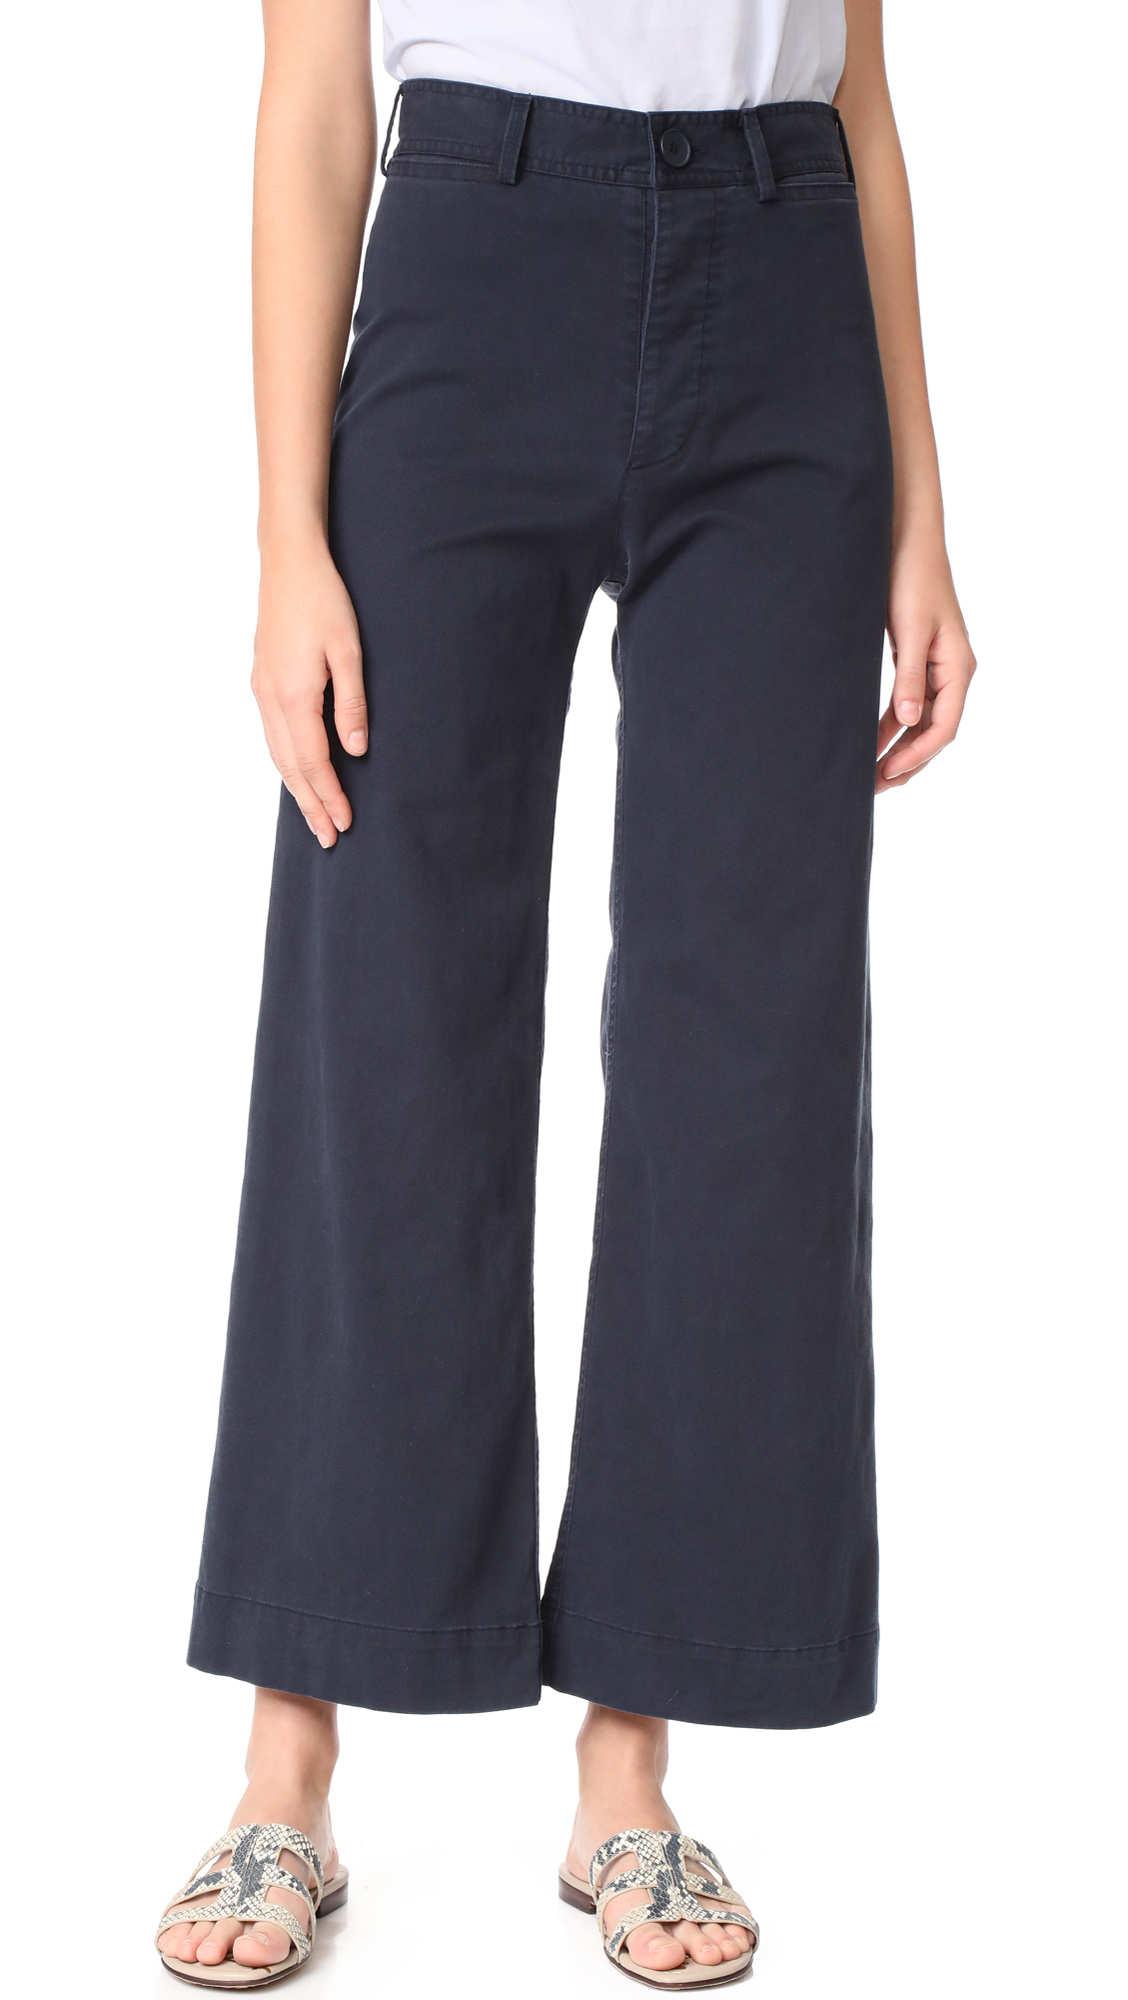 Emerson Thorpe Ryan High Waisted Wide Leg Pants - Navy